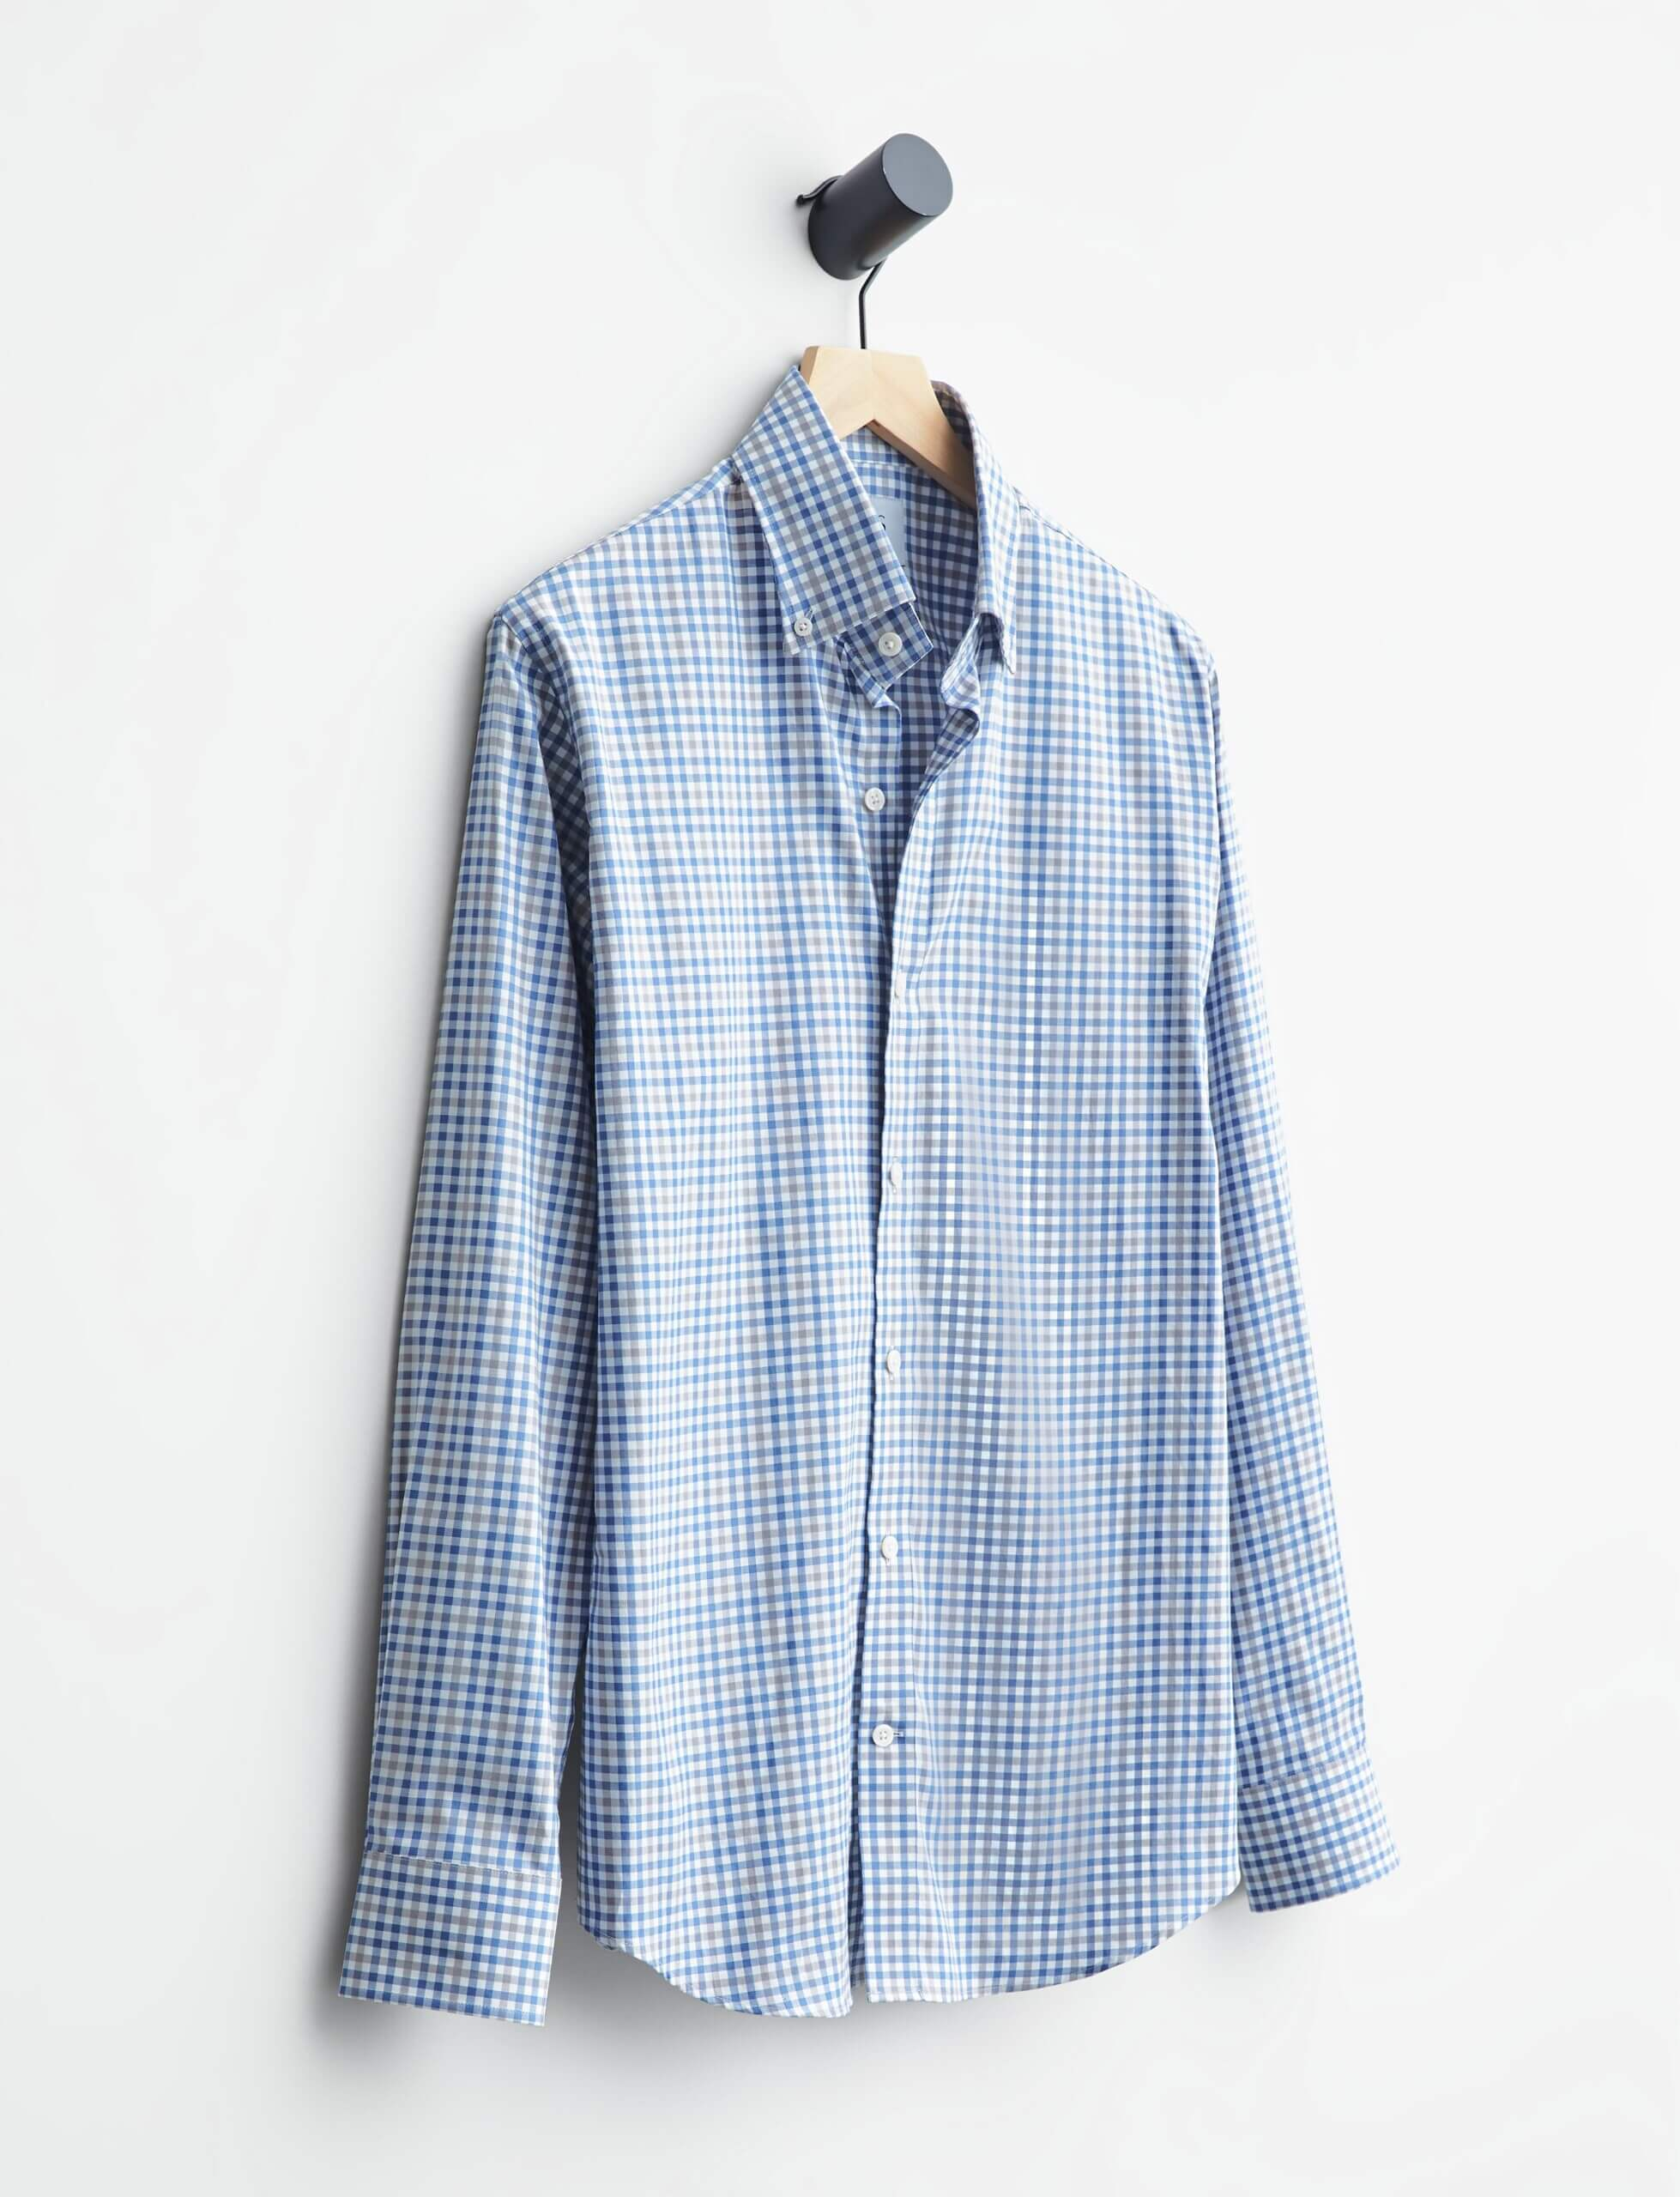 Stitch Fix men's plaid blue and white button-up hanging on a wood hanger.